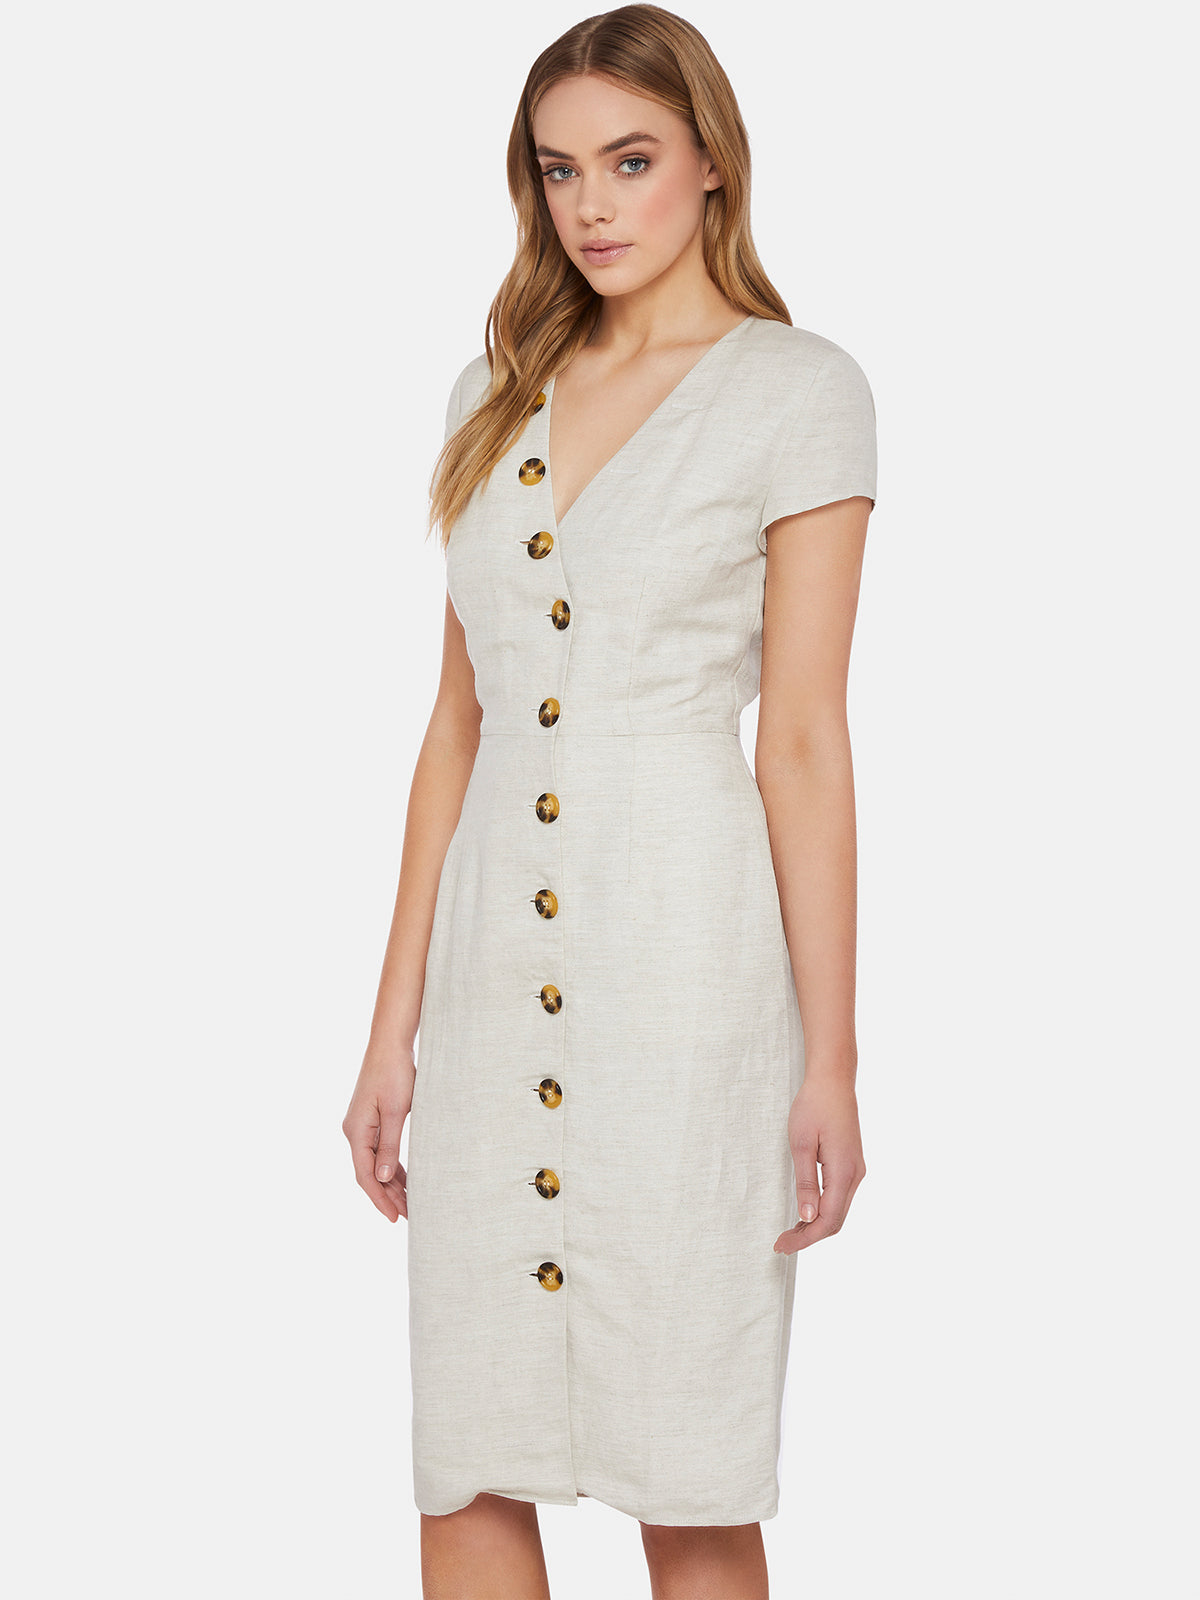 BECCY BUTTON UP DRESS